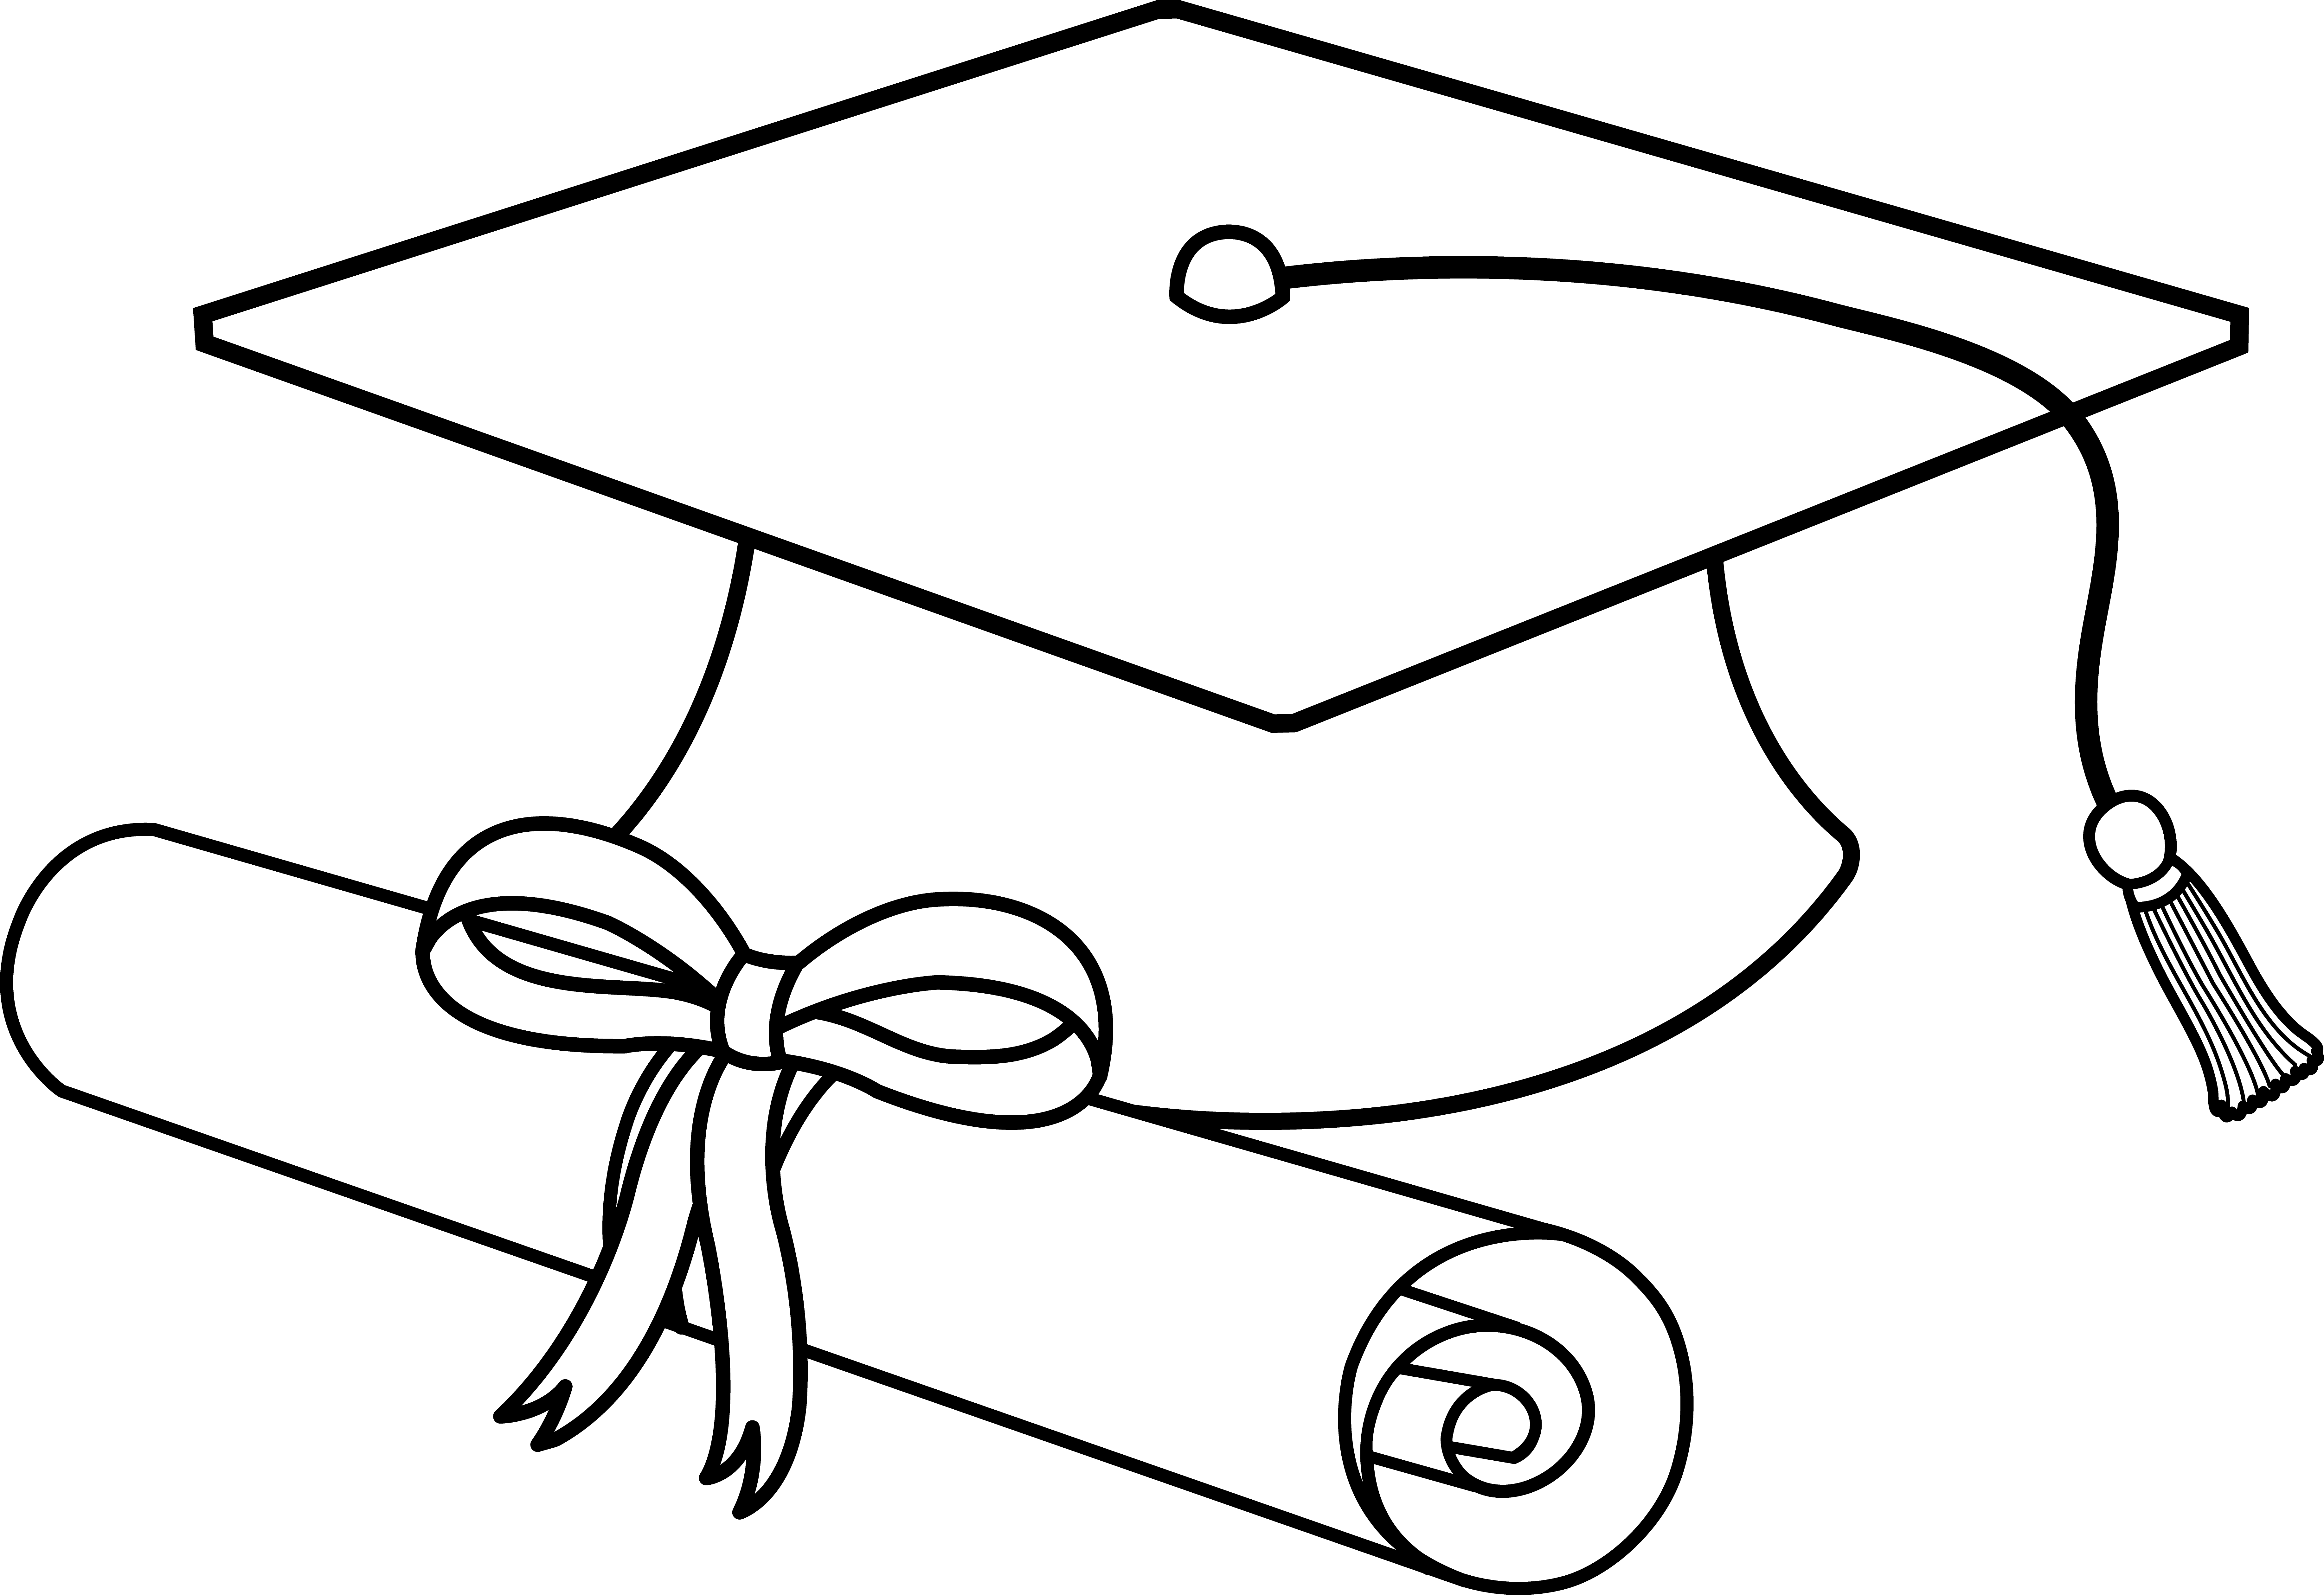 Clipart graduation cap and gown scrolls money graphic freeuse Caps Drawing at GetDrawings.com | Free for personal use Caps Drawing ... graphic freeuse